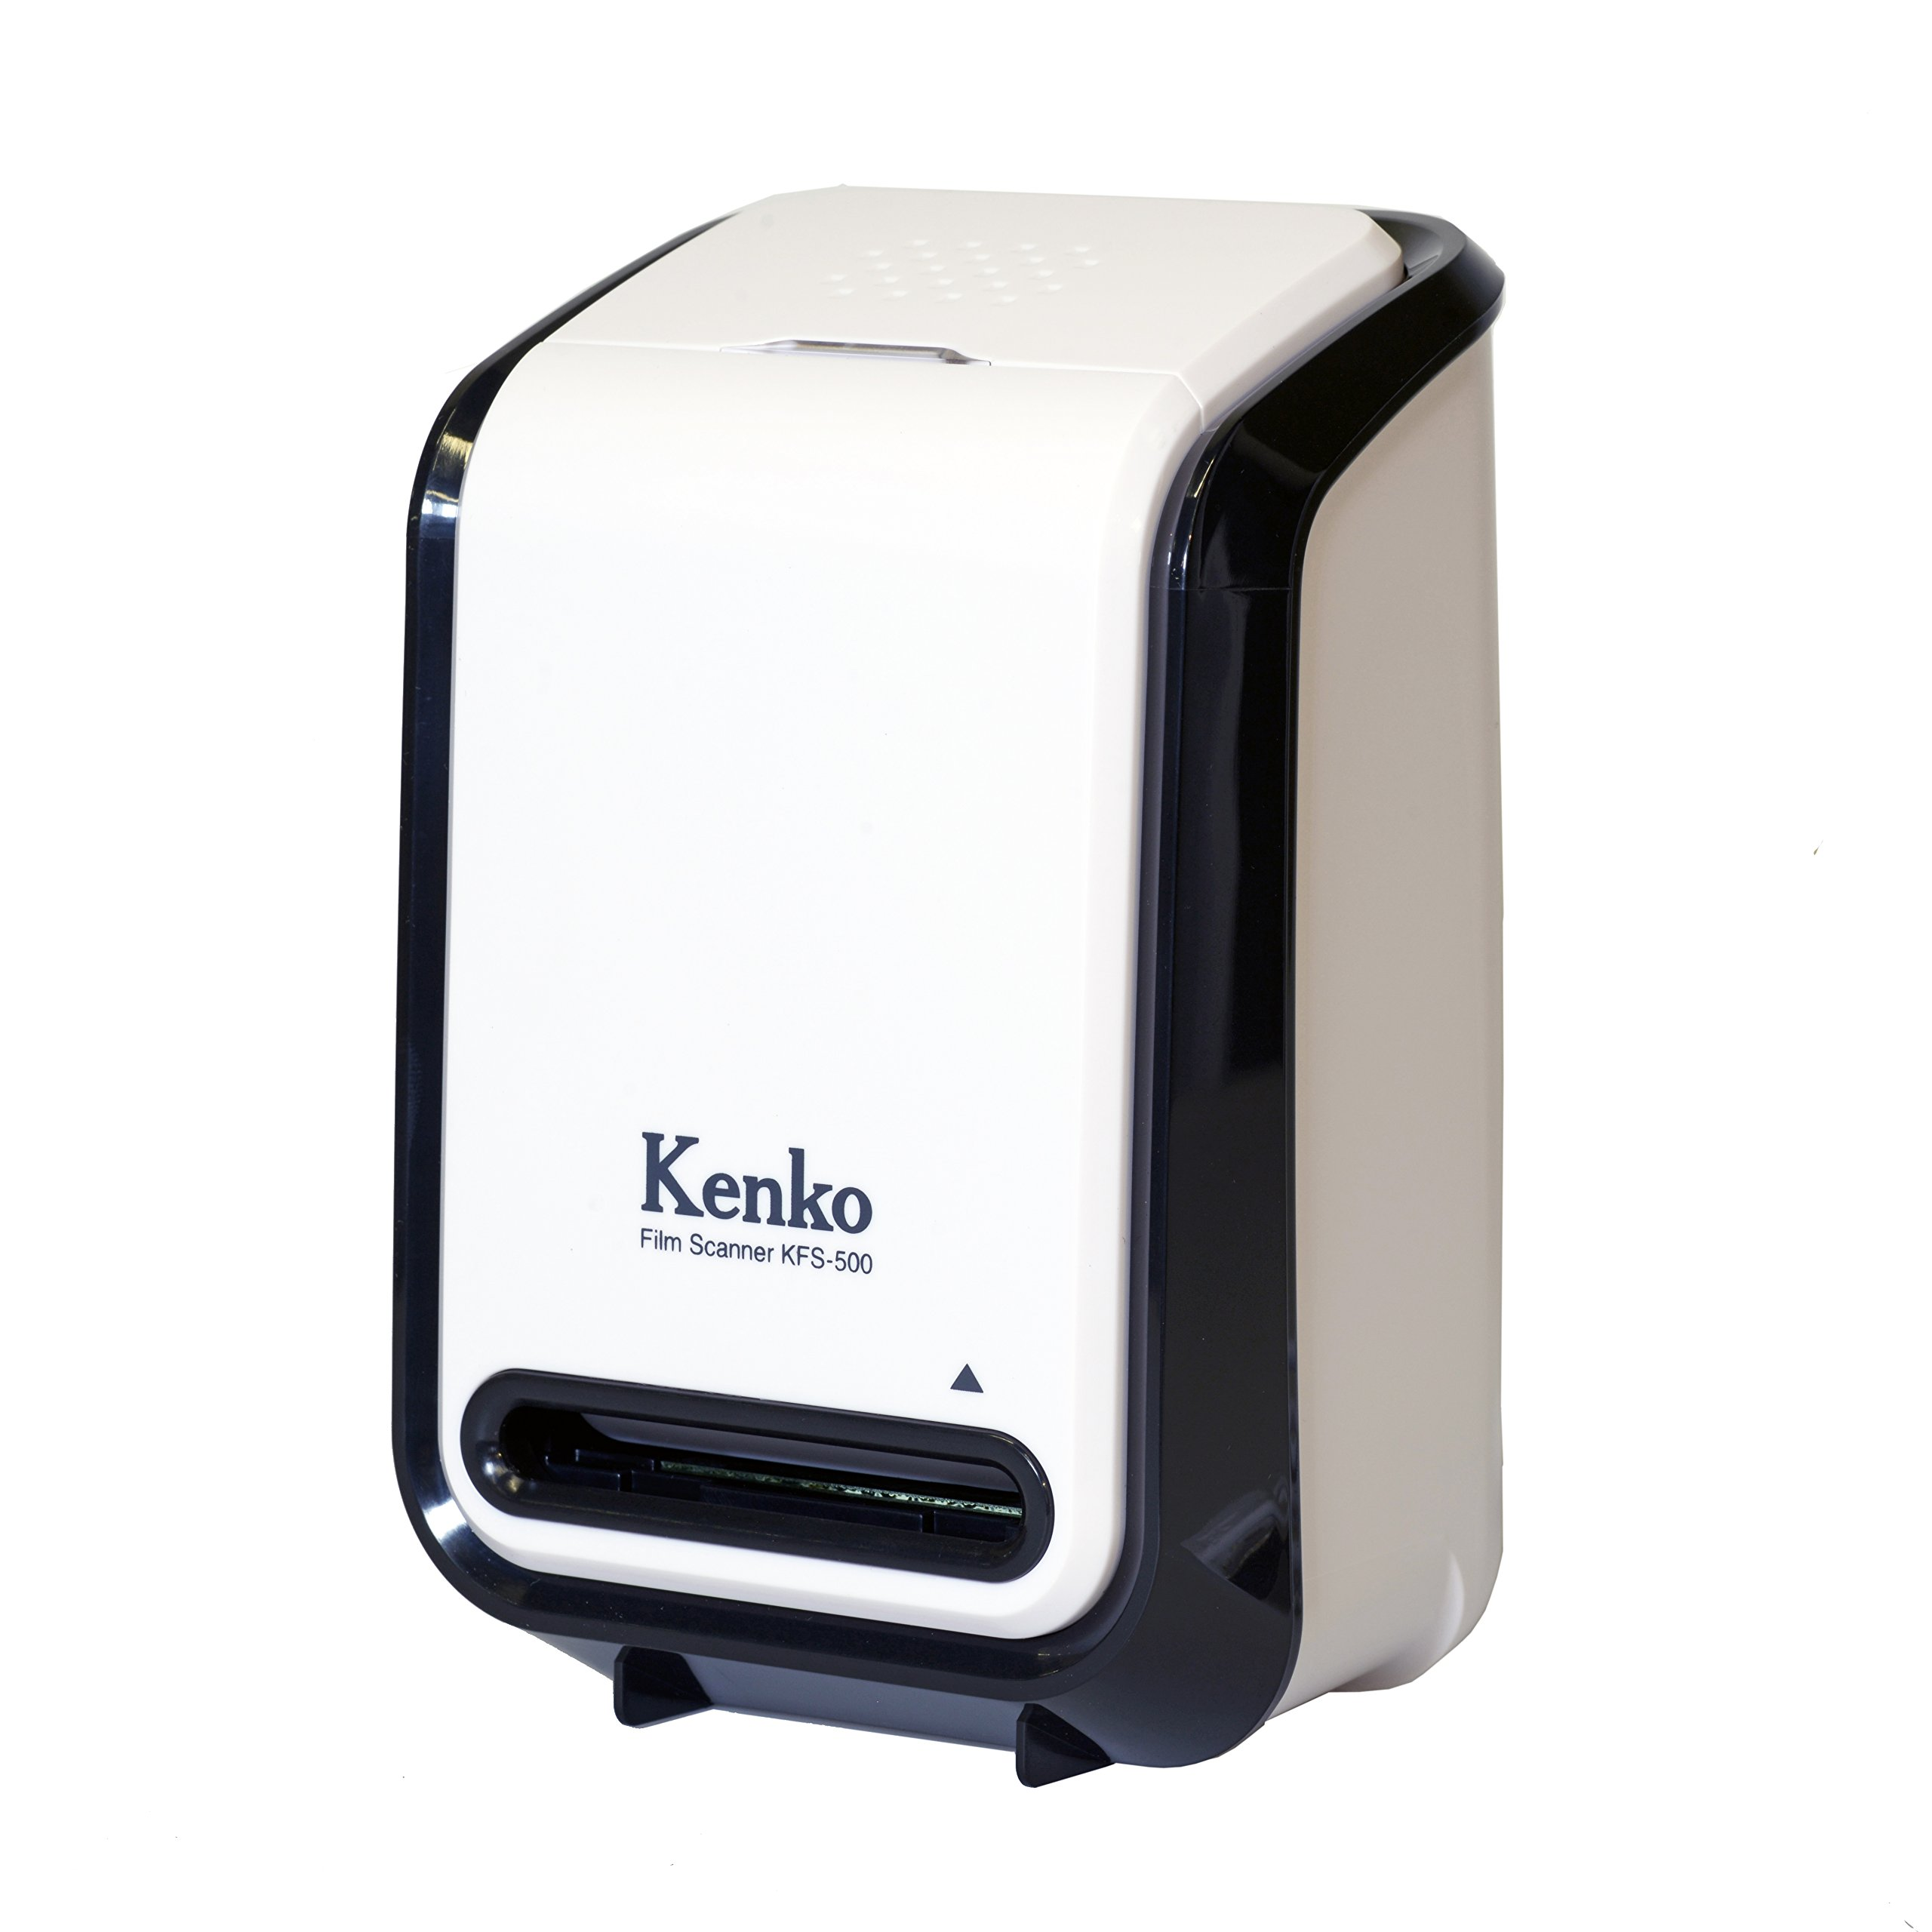 Accessory film scanner 5,170,000 pixels for Kenko camera Windows8.1 corresponding KFS-500WHBK by Kenko